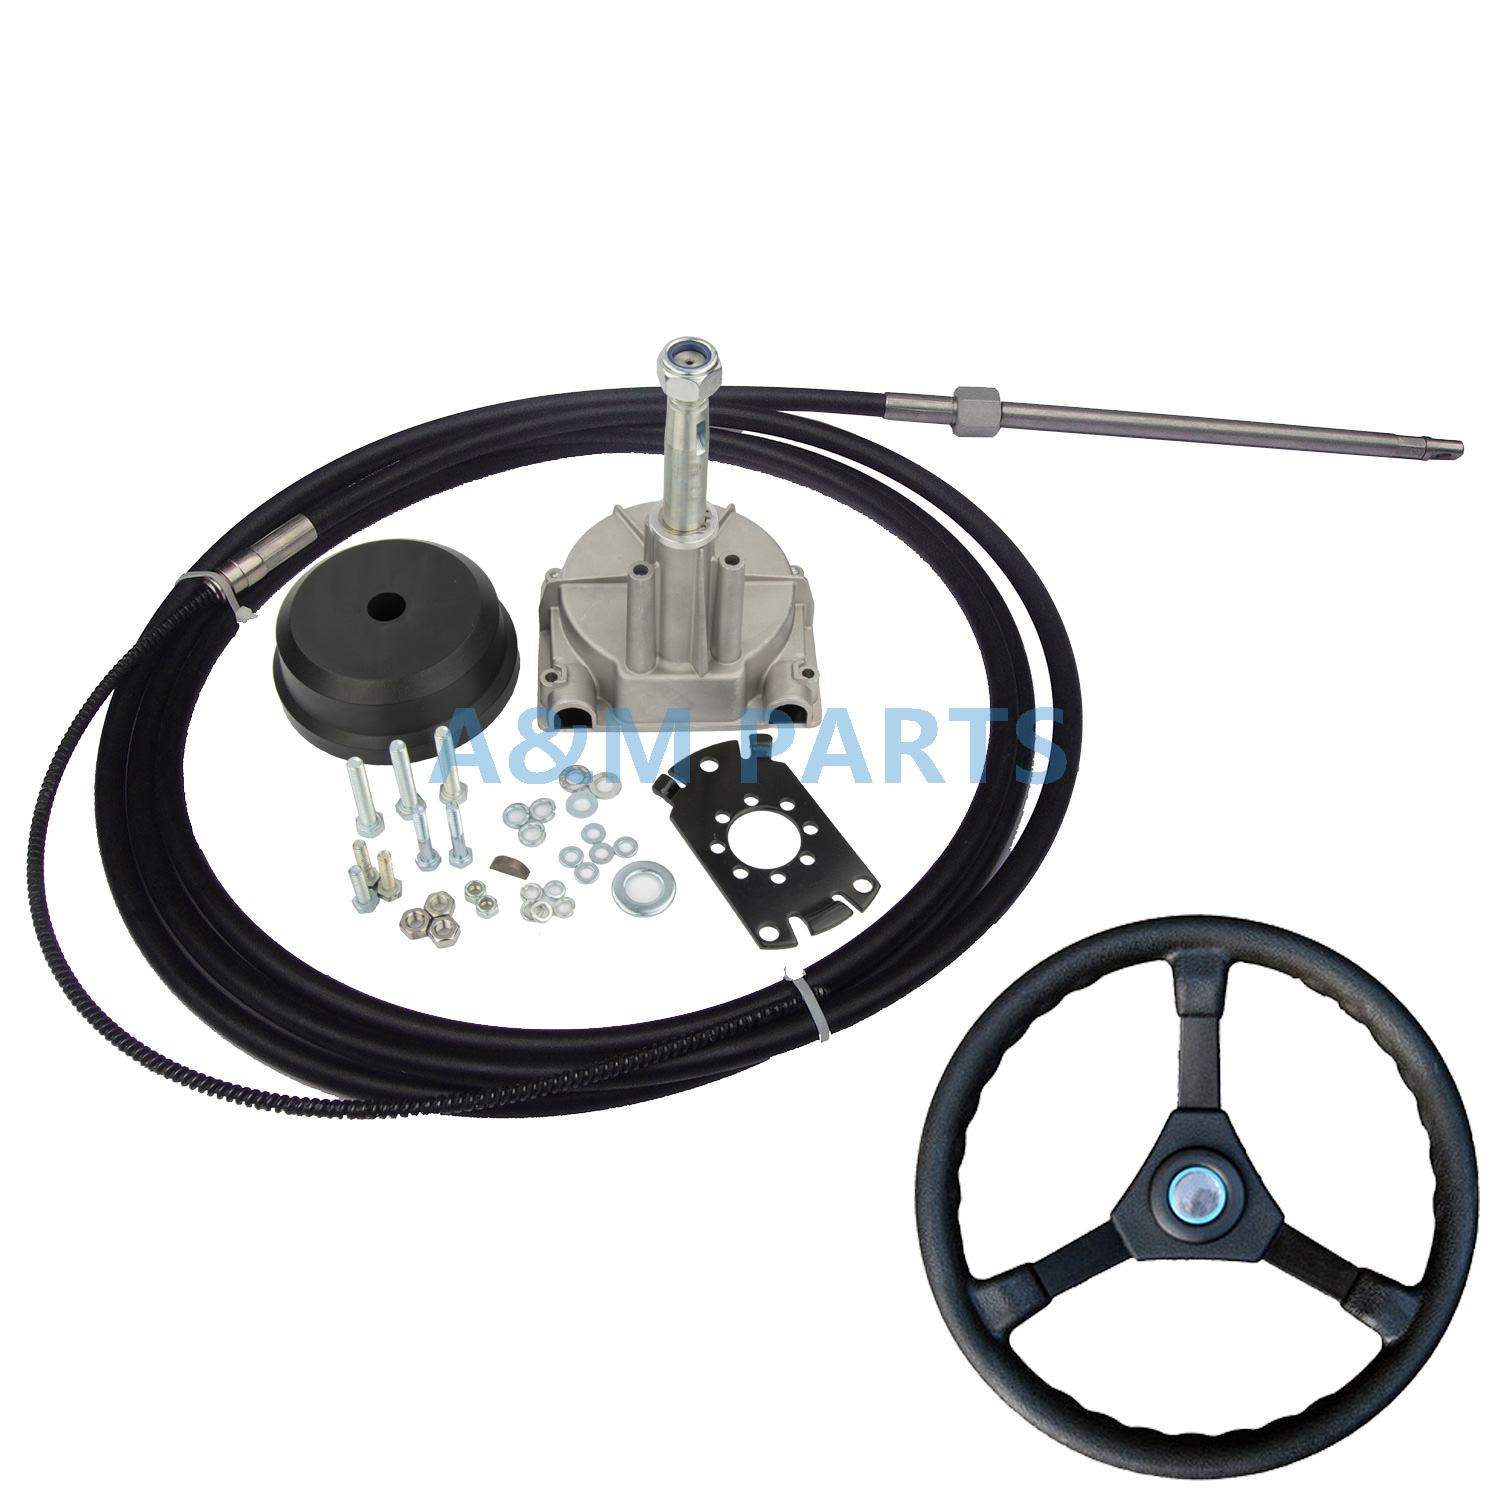 10FT Marine Engine Turbine Rotary Steering System Boat Mechanical Cable Wheel